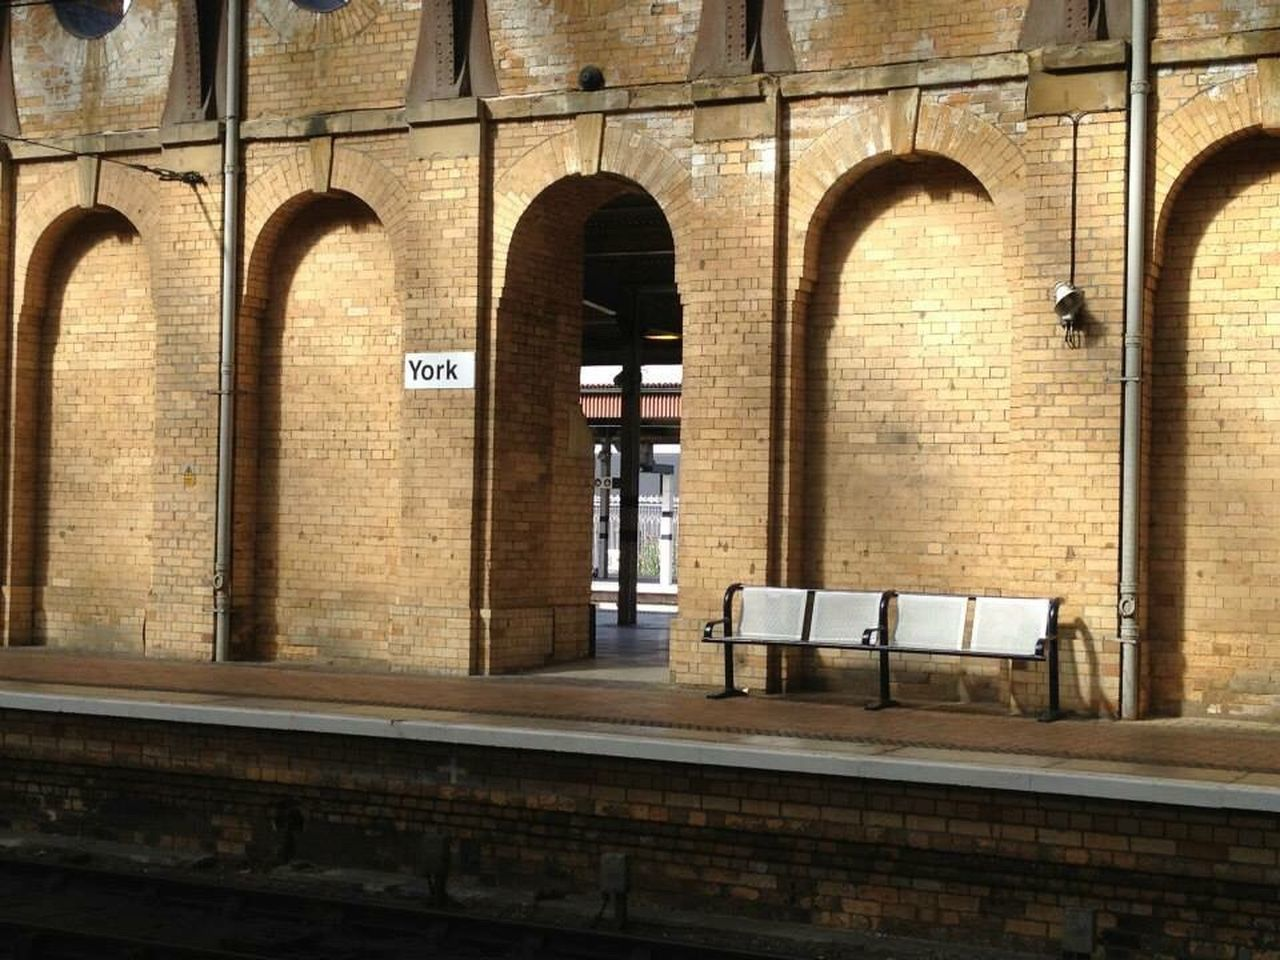 architecture, built structure, arch, building exterior, no people, building, day, wall, brick wall, city, outdoors, communication, window, wall - building feature, seat, railroad station, rail transportation, absence, brick, text, arched